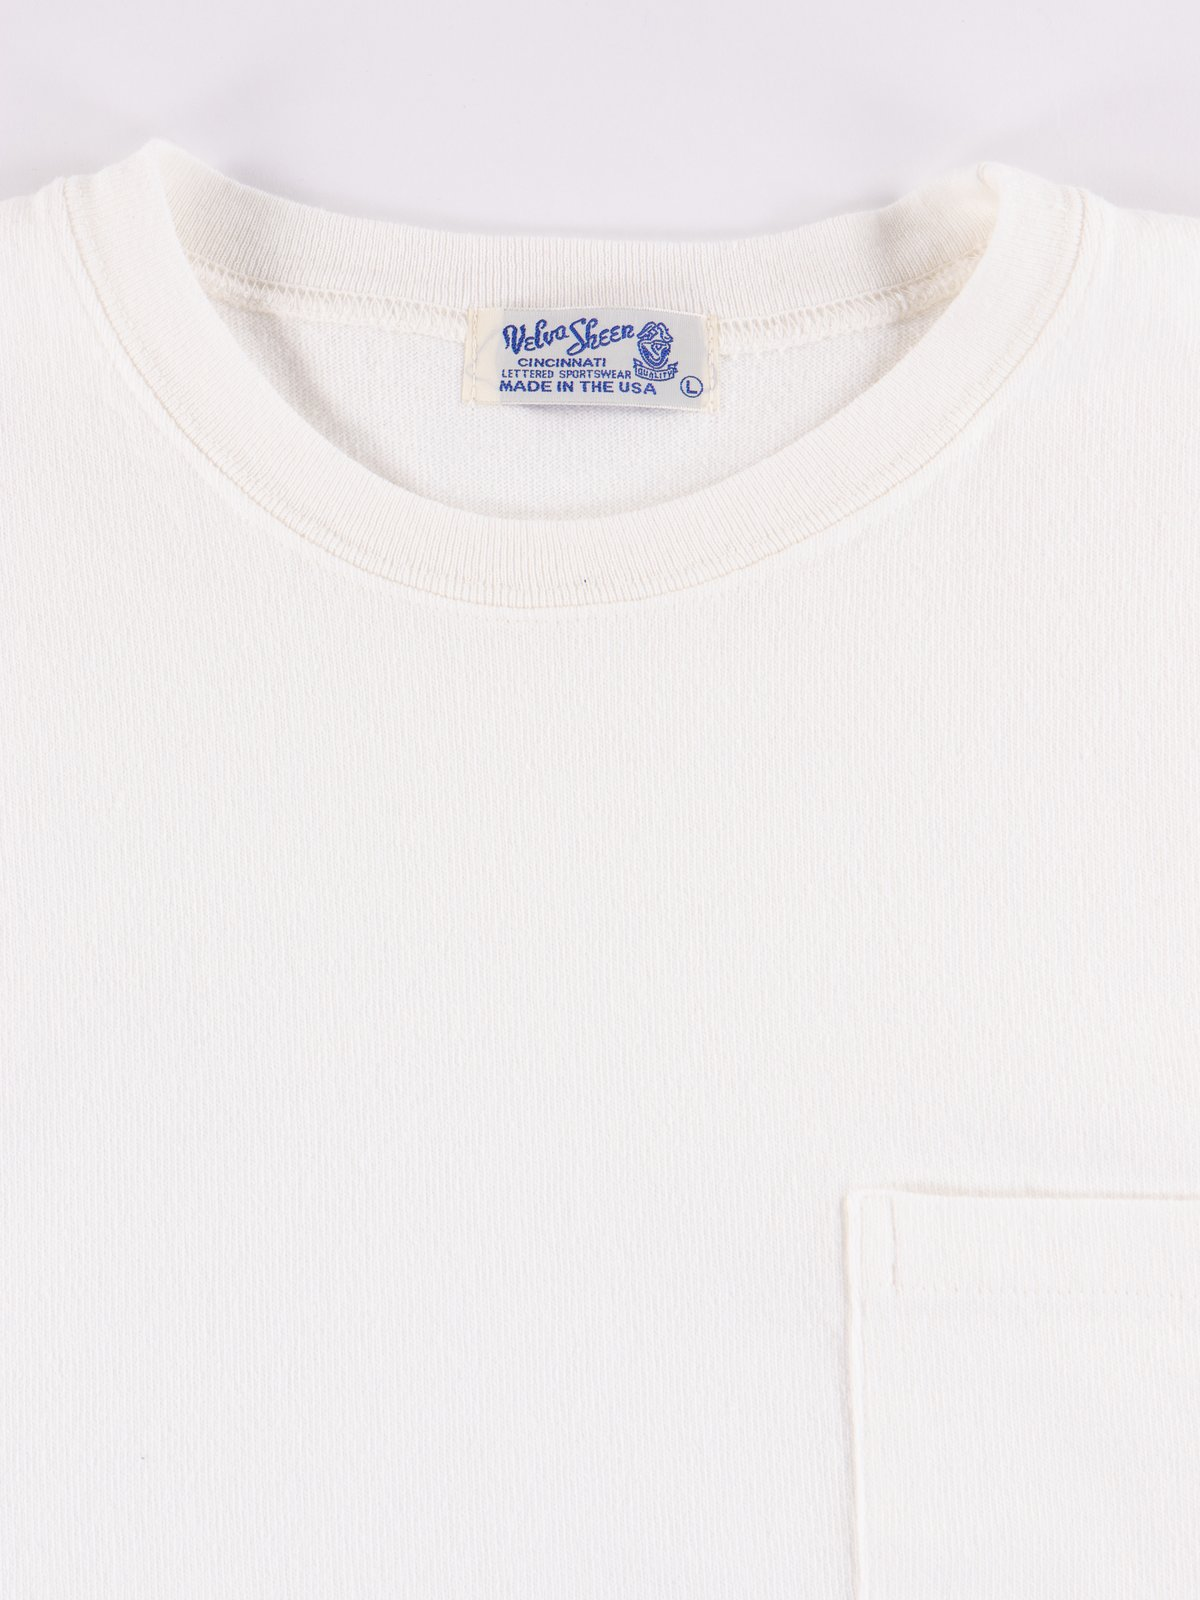 White Heavy Oz Pocket Tee - Image 2